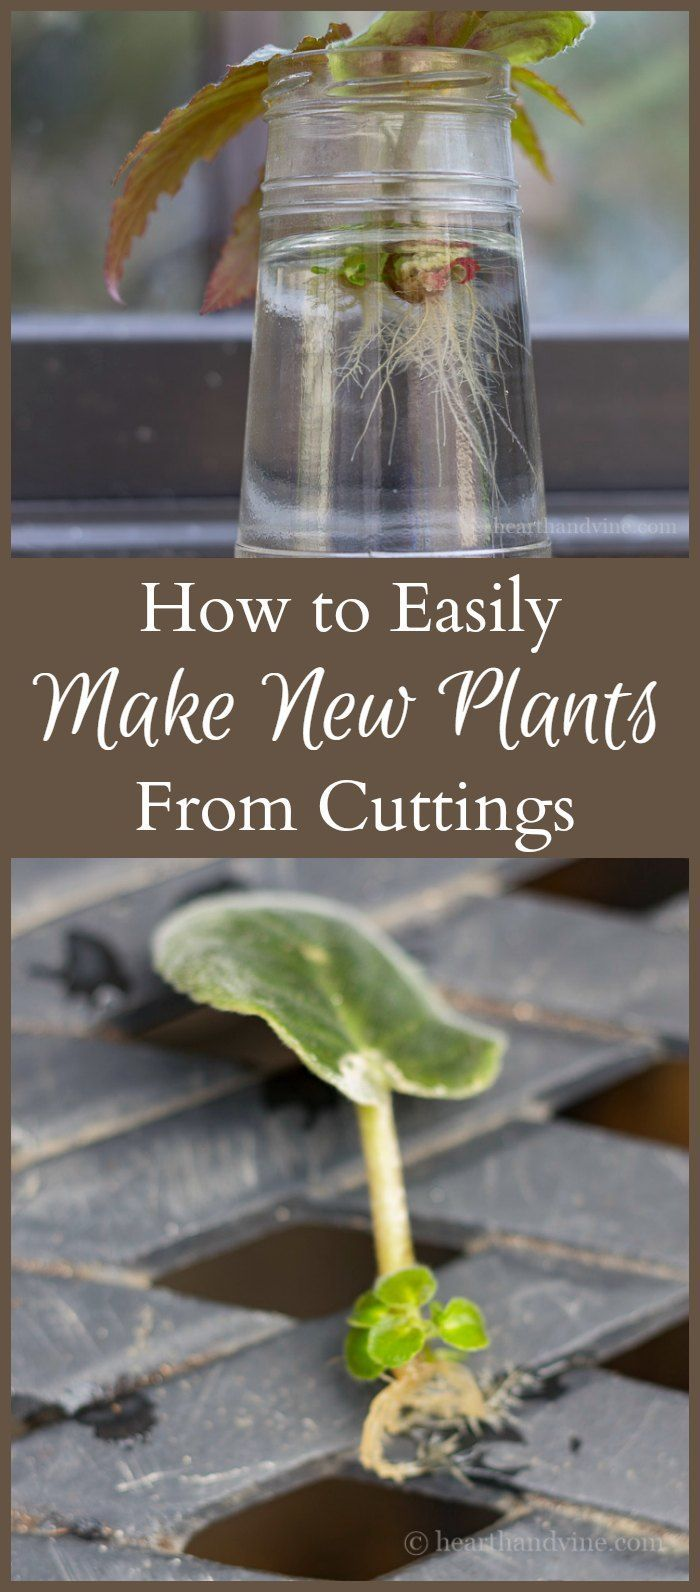 See how easy it is to root plants in water with cuttings. This propagation method works on many varieties, giving you more beautiful plants for free.